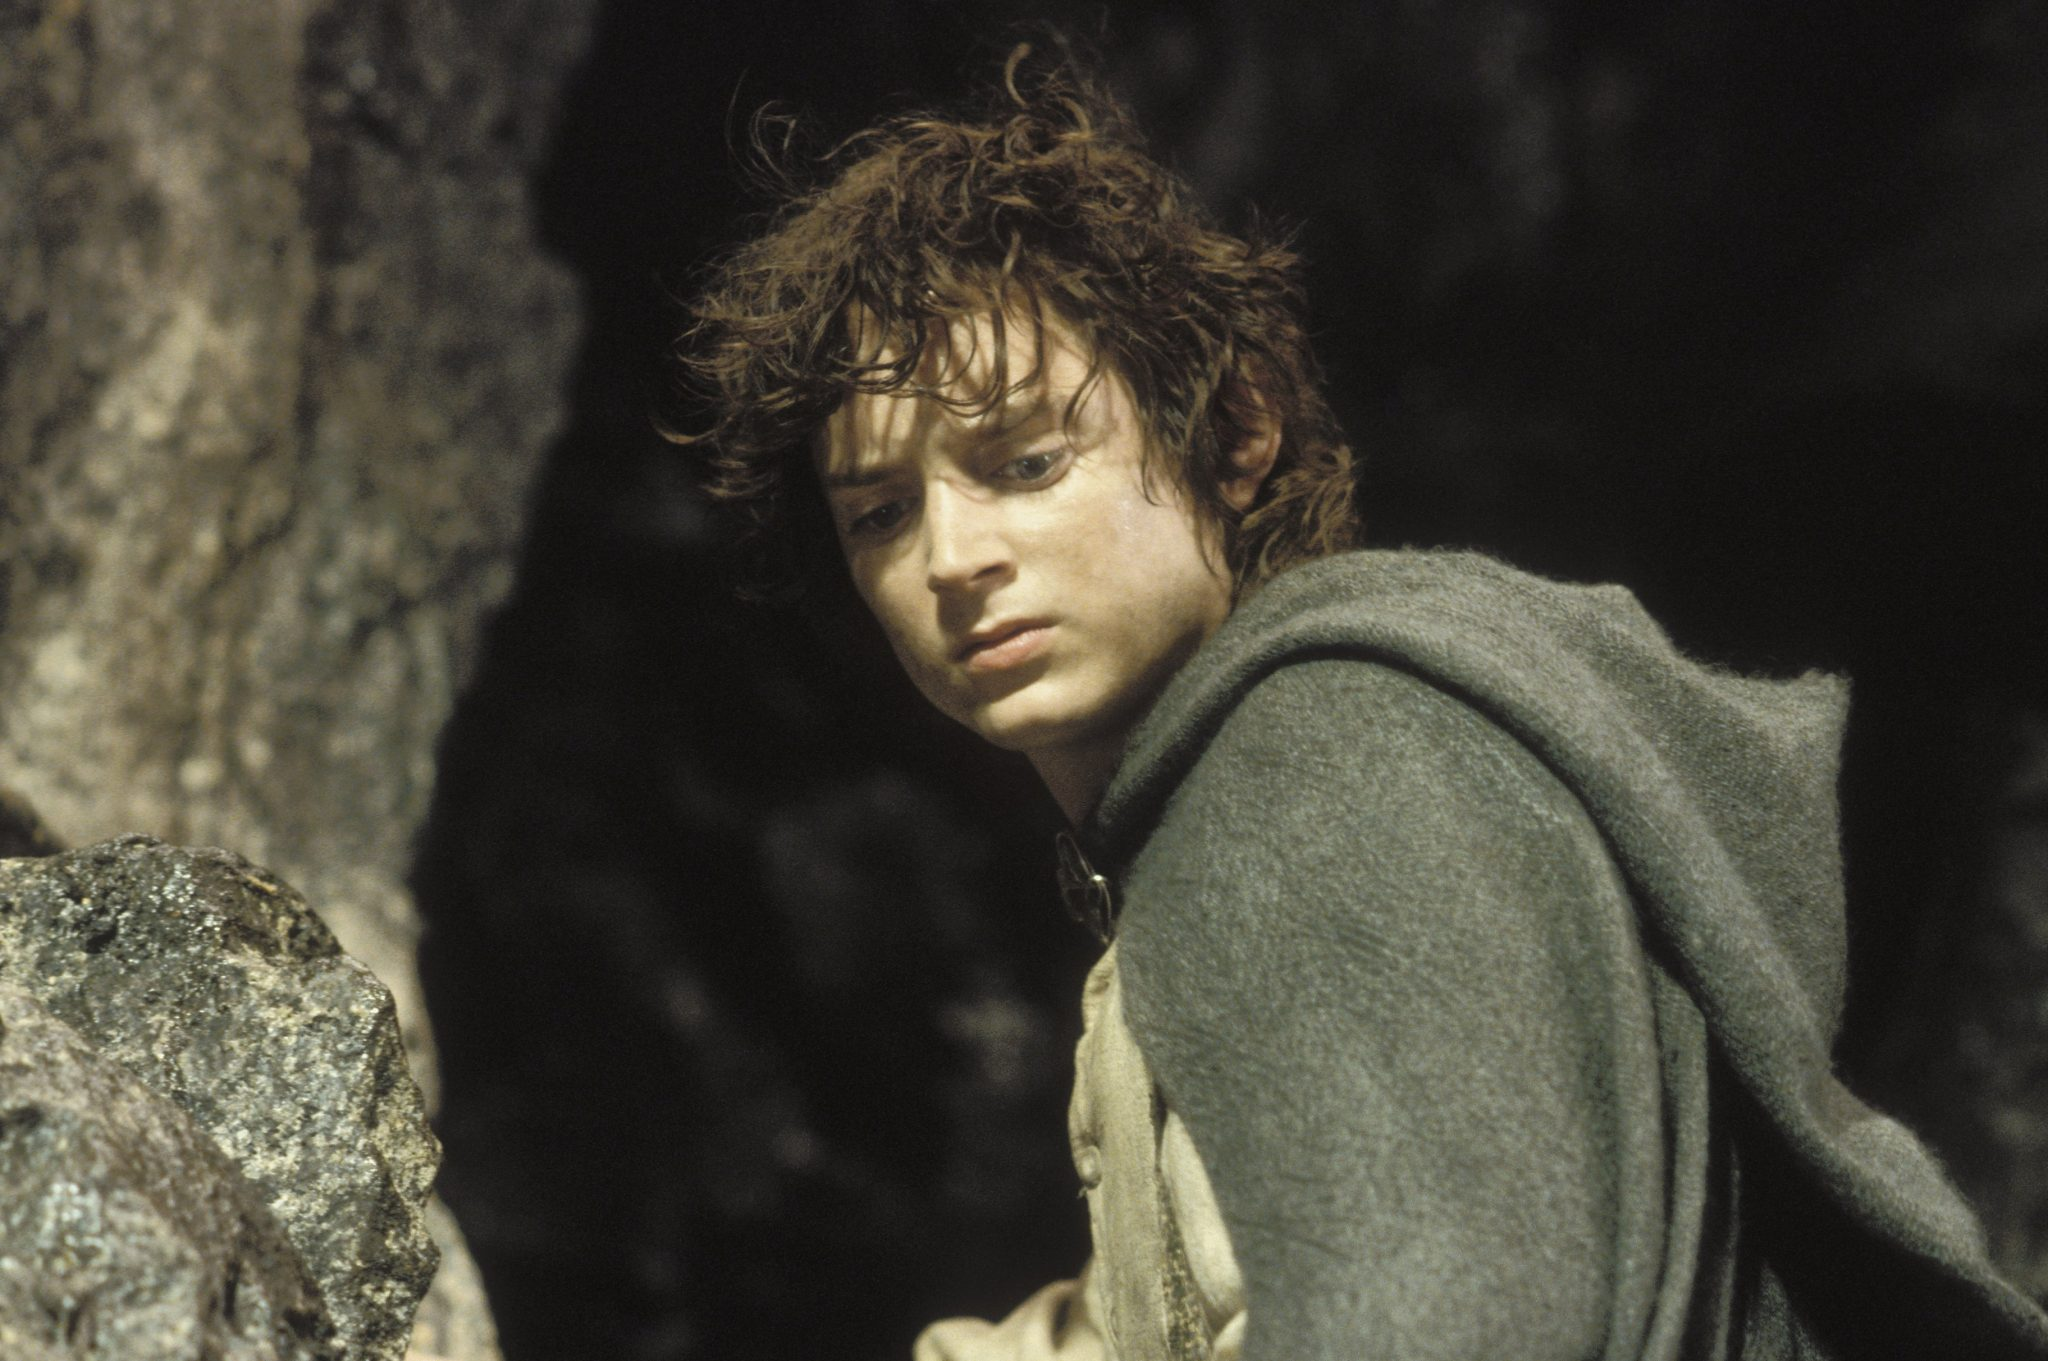 Lord of the Rings: Return of the King (2003)